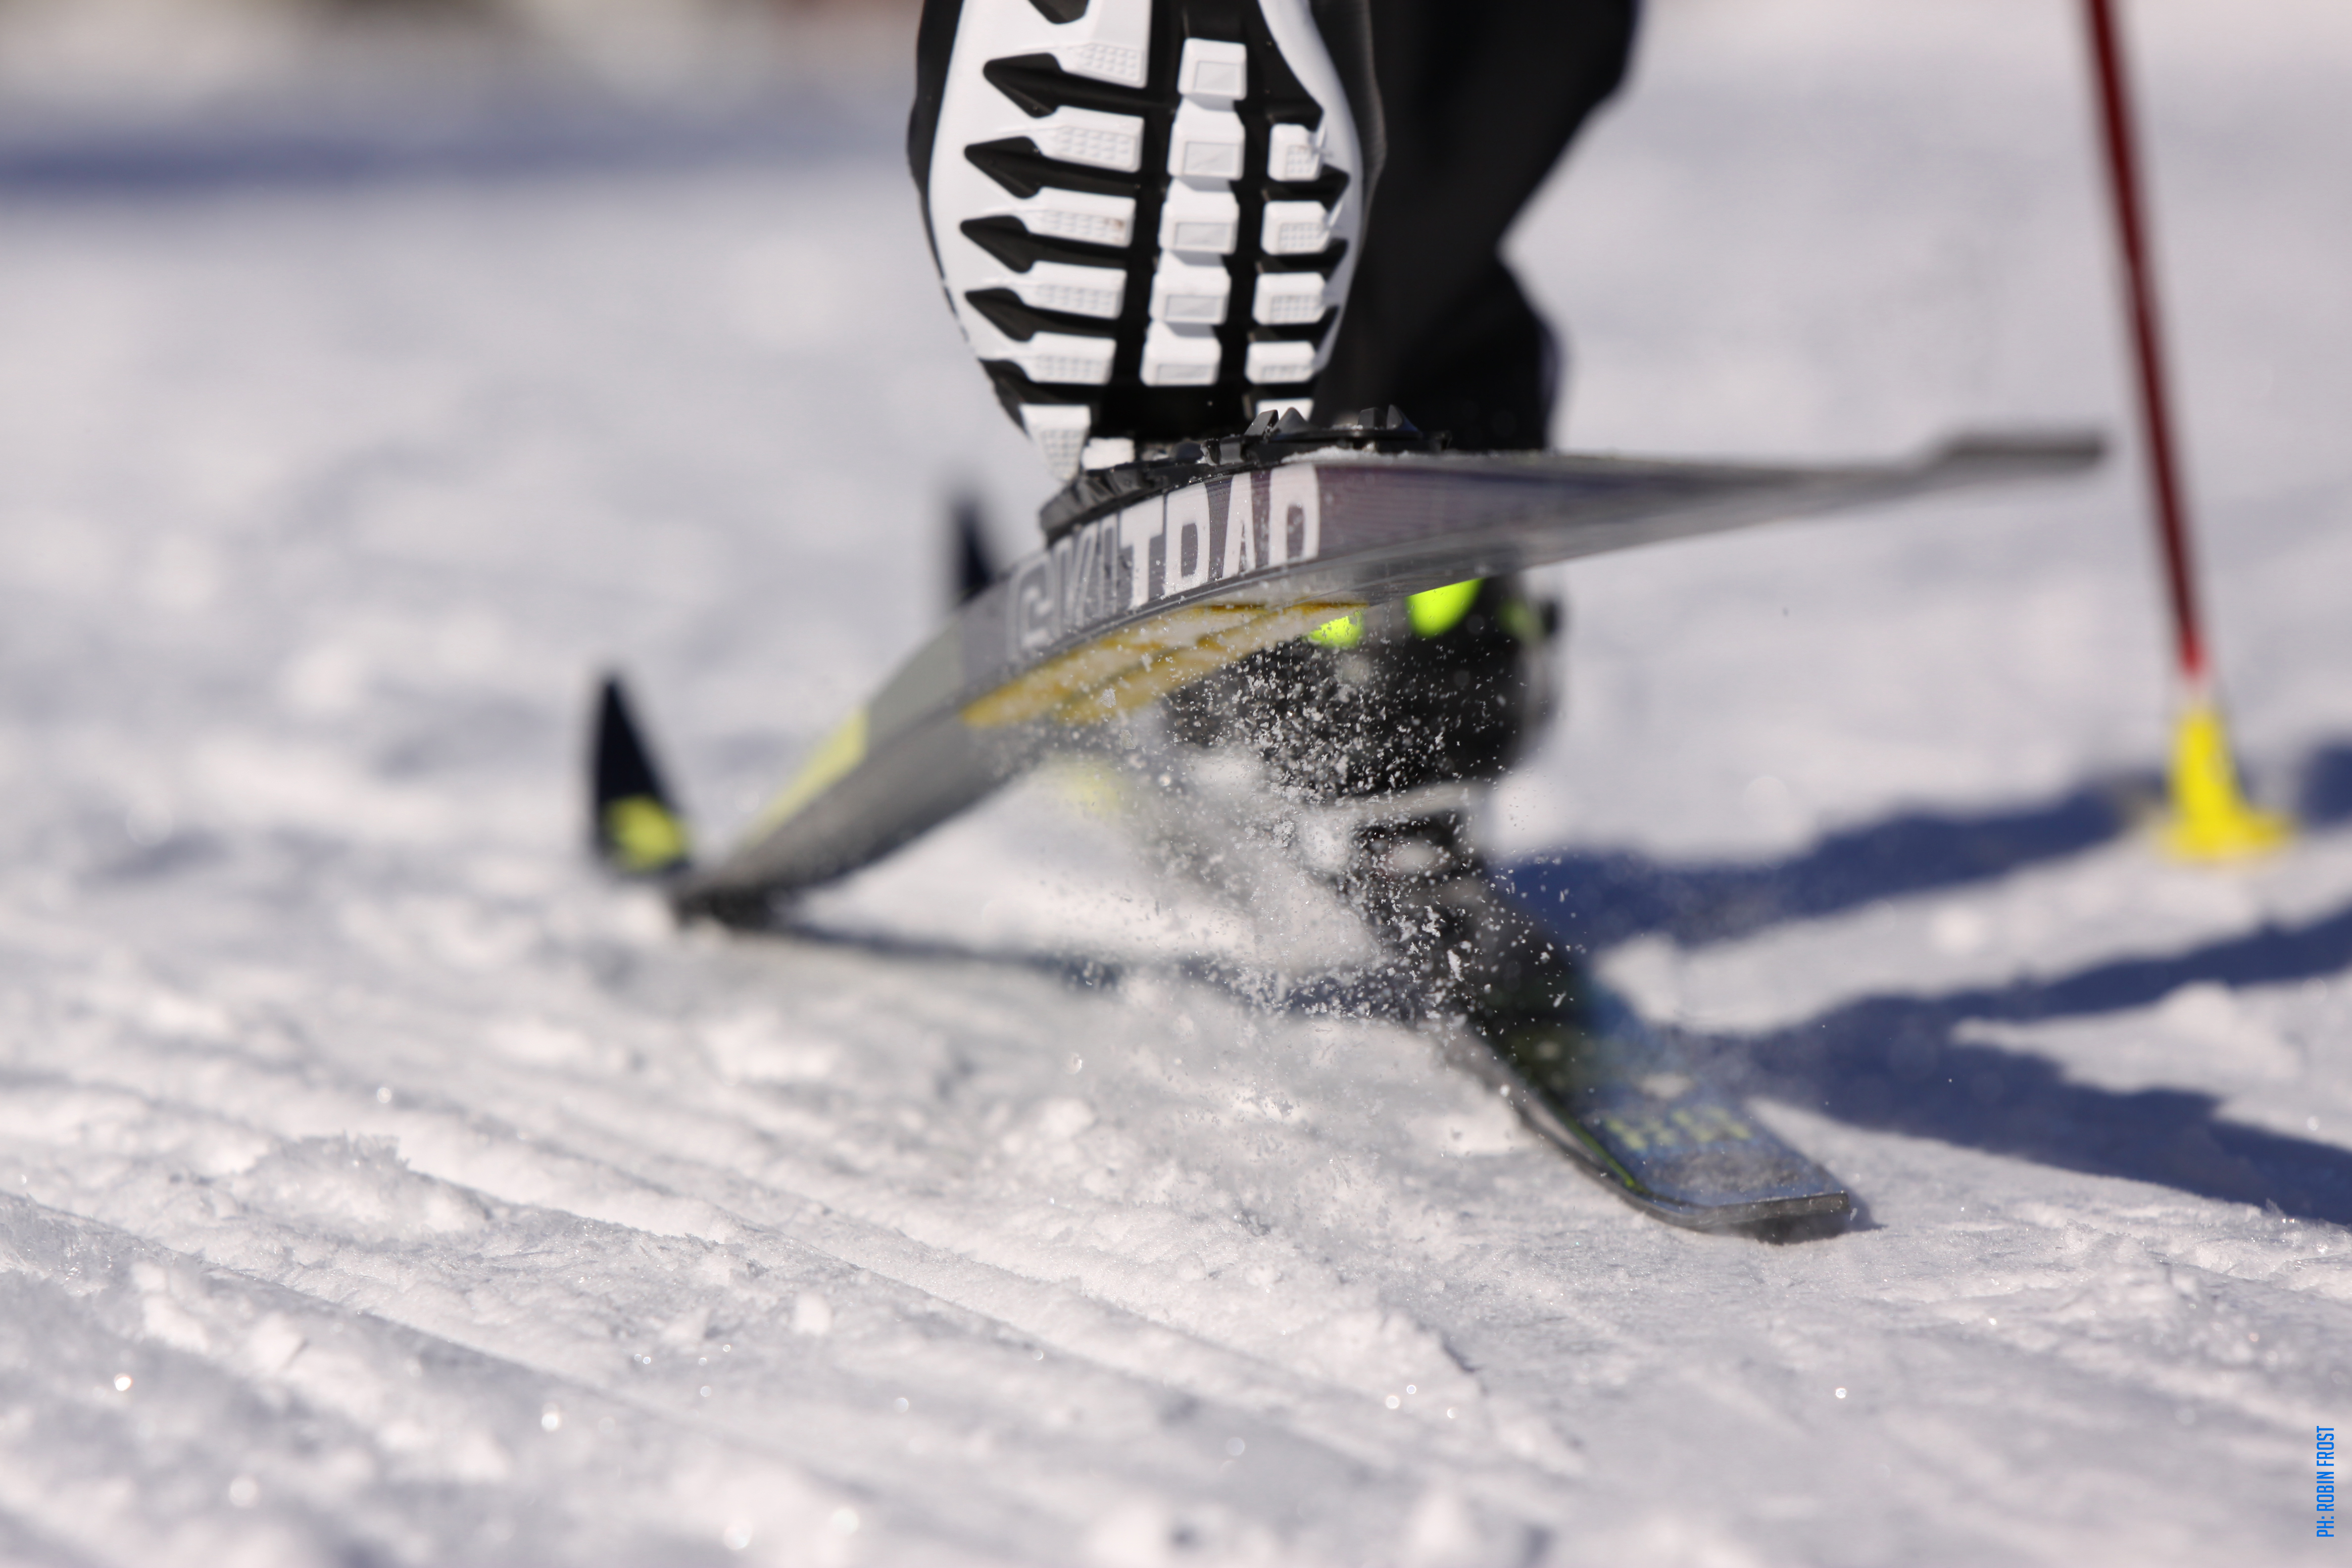 GLIDING TECH, TECNOLOGY THAT MADE SKIS FASTER